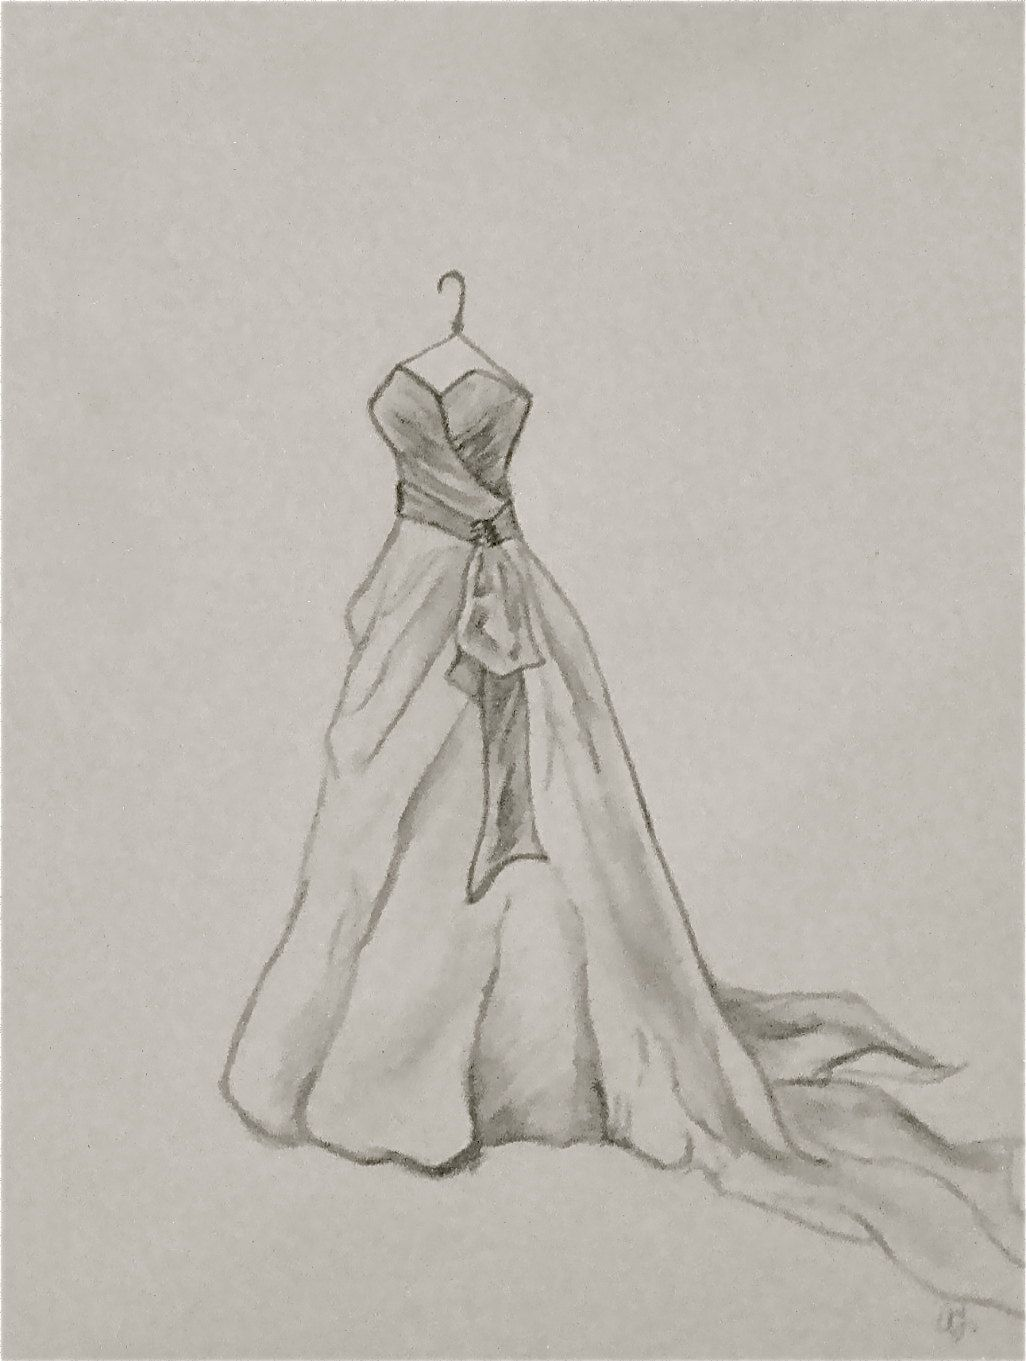 Custom Wedding Dress Sketch | Artisan | Pinterest | Wedding dress ...